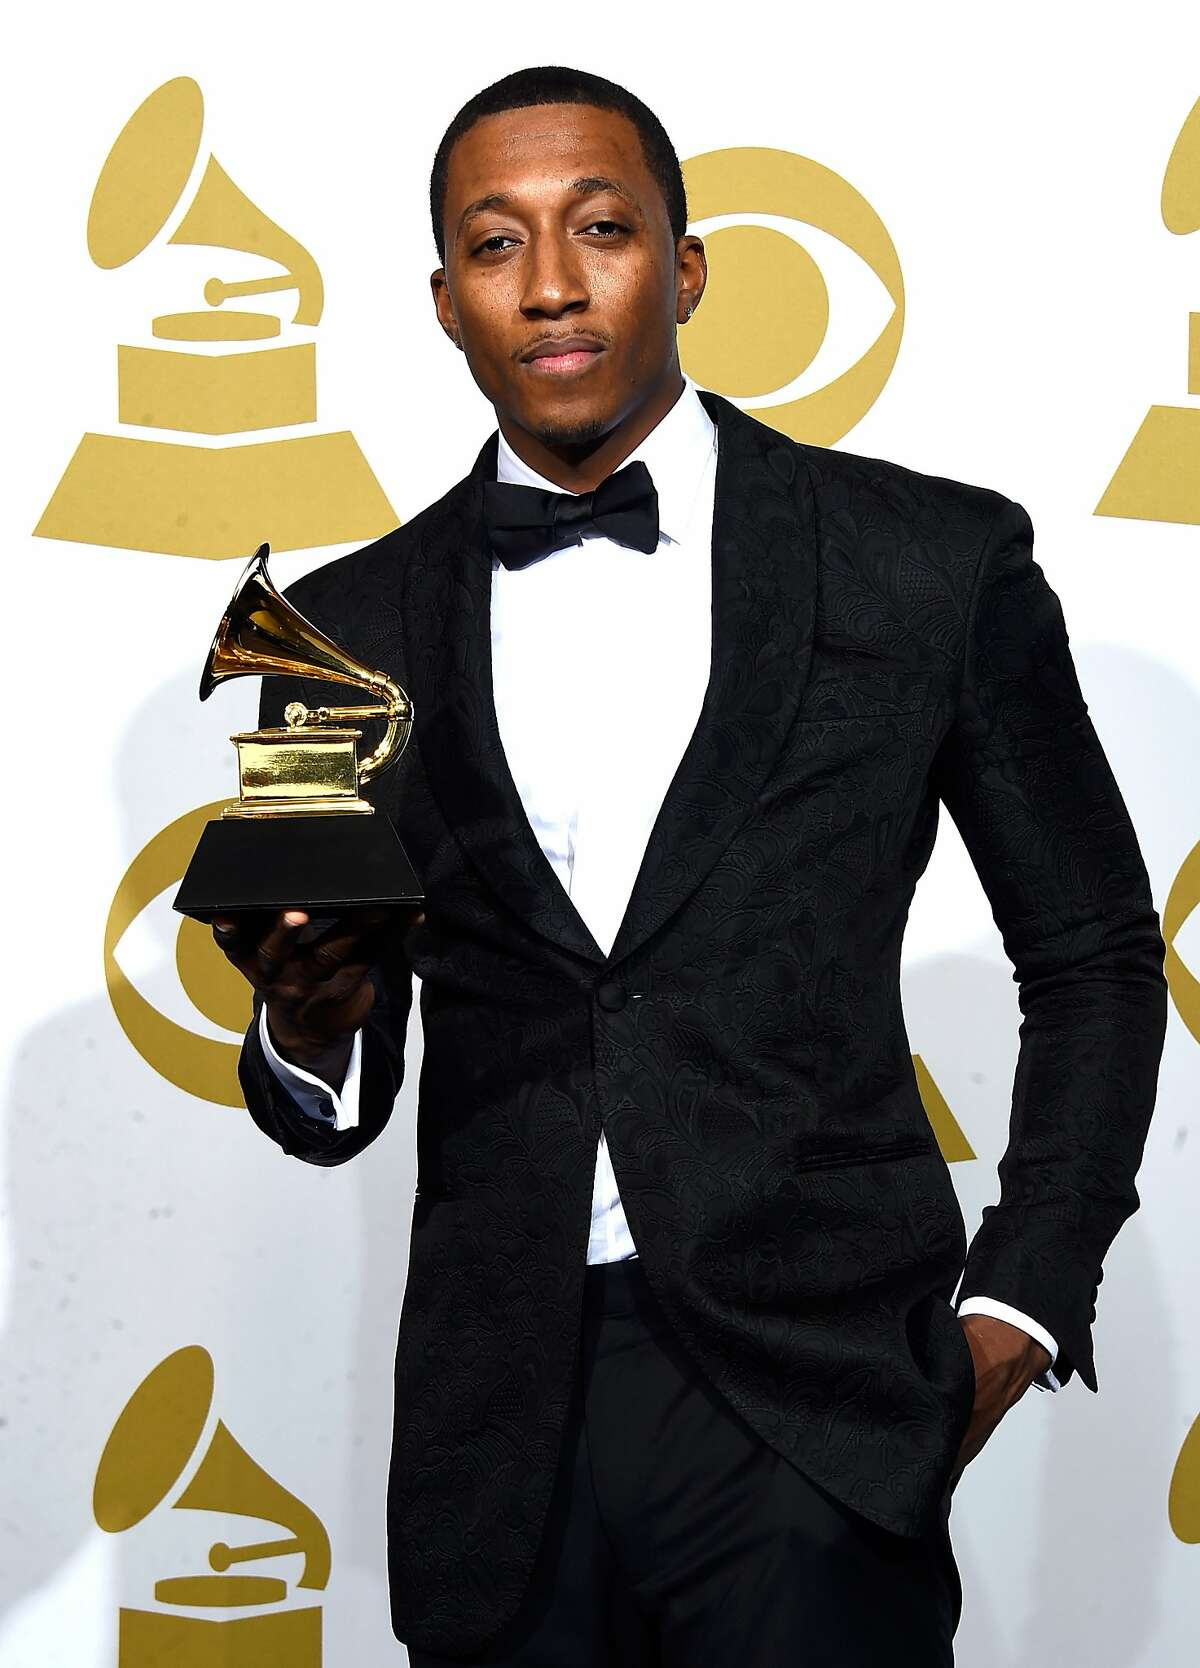 LOS ANGELES, CA - FEBRUARY 08: Rapper Lecrae, winner of Best Contemporary Christian Music Performance/Song for 'Messengers,' poses in the press room during The 57th Annual GRAMMY Awards at the STAPLES Center on February 8, 2015 in Los Angeles, California. (Photo by Frazer Harrison/Getty Images)